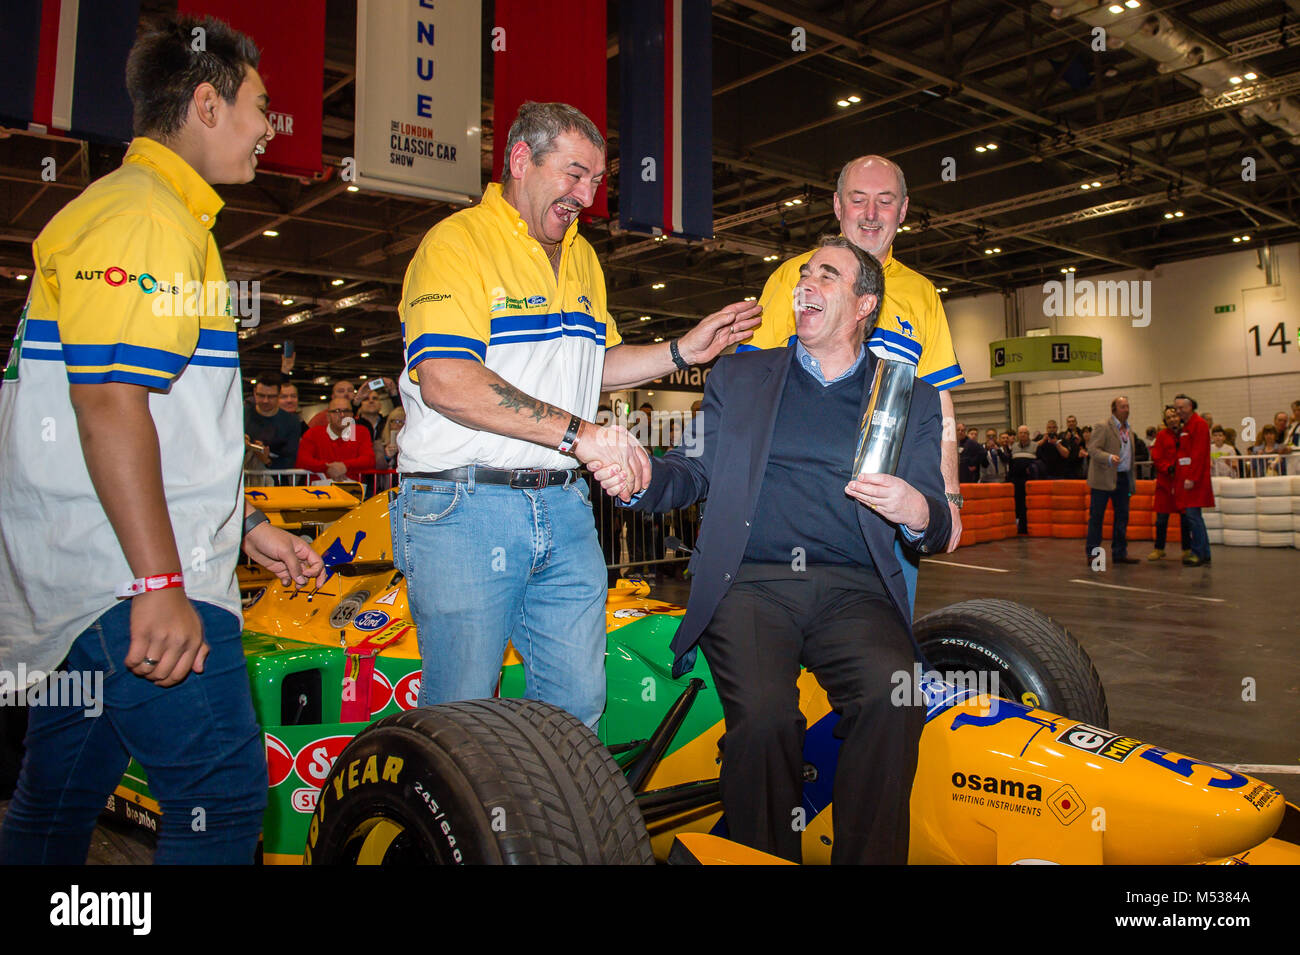 Nigel Mansell with the Benetton 193B F1 team at The London Classic Car Show & Historic Motorsport International - Stock Image